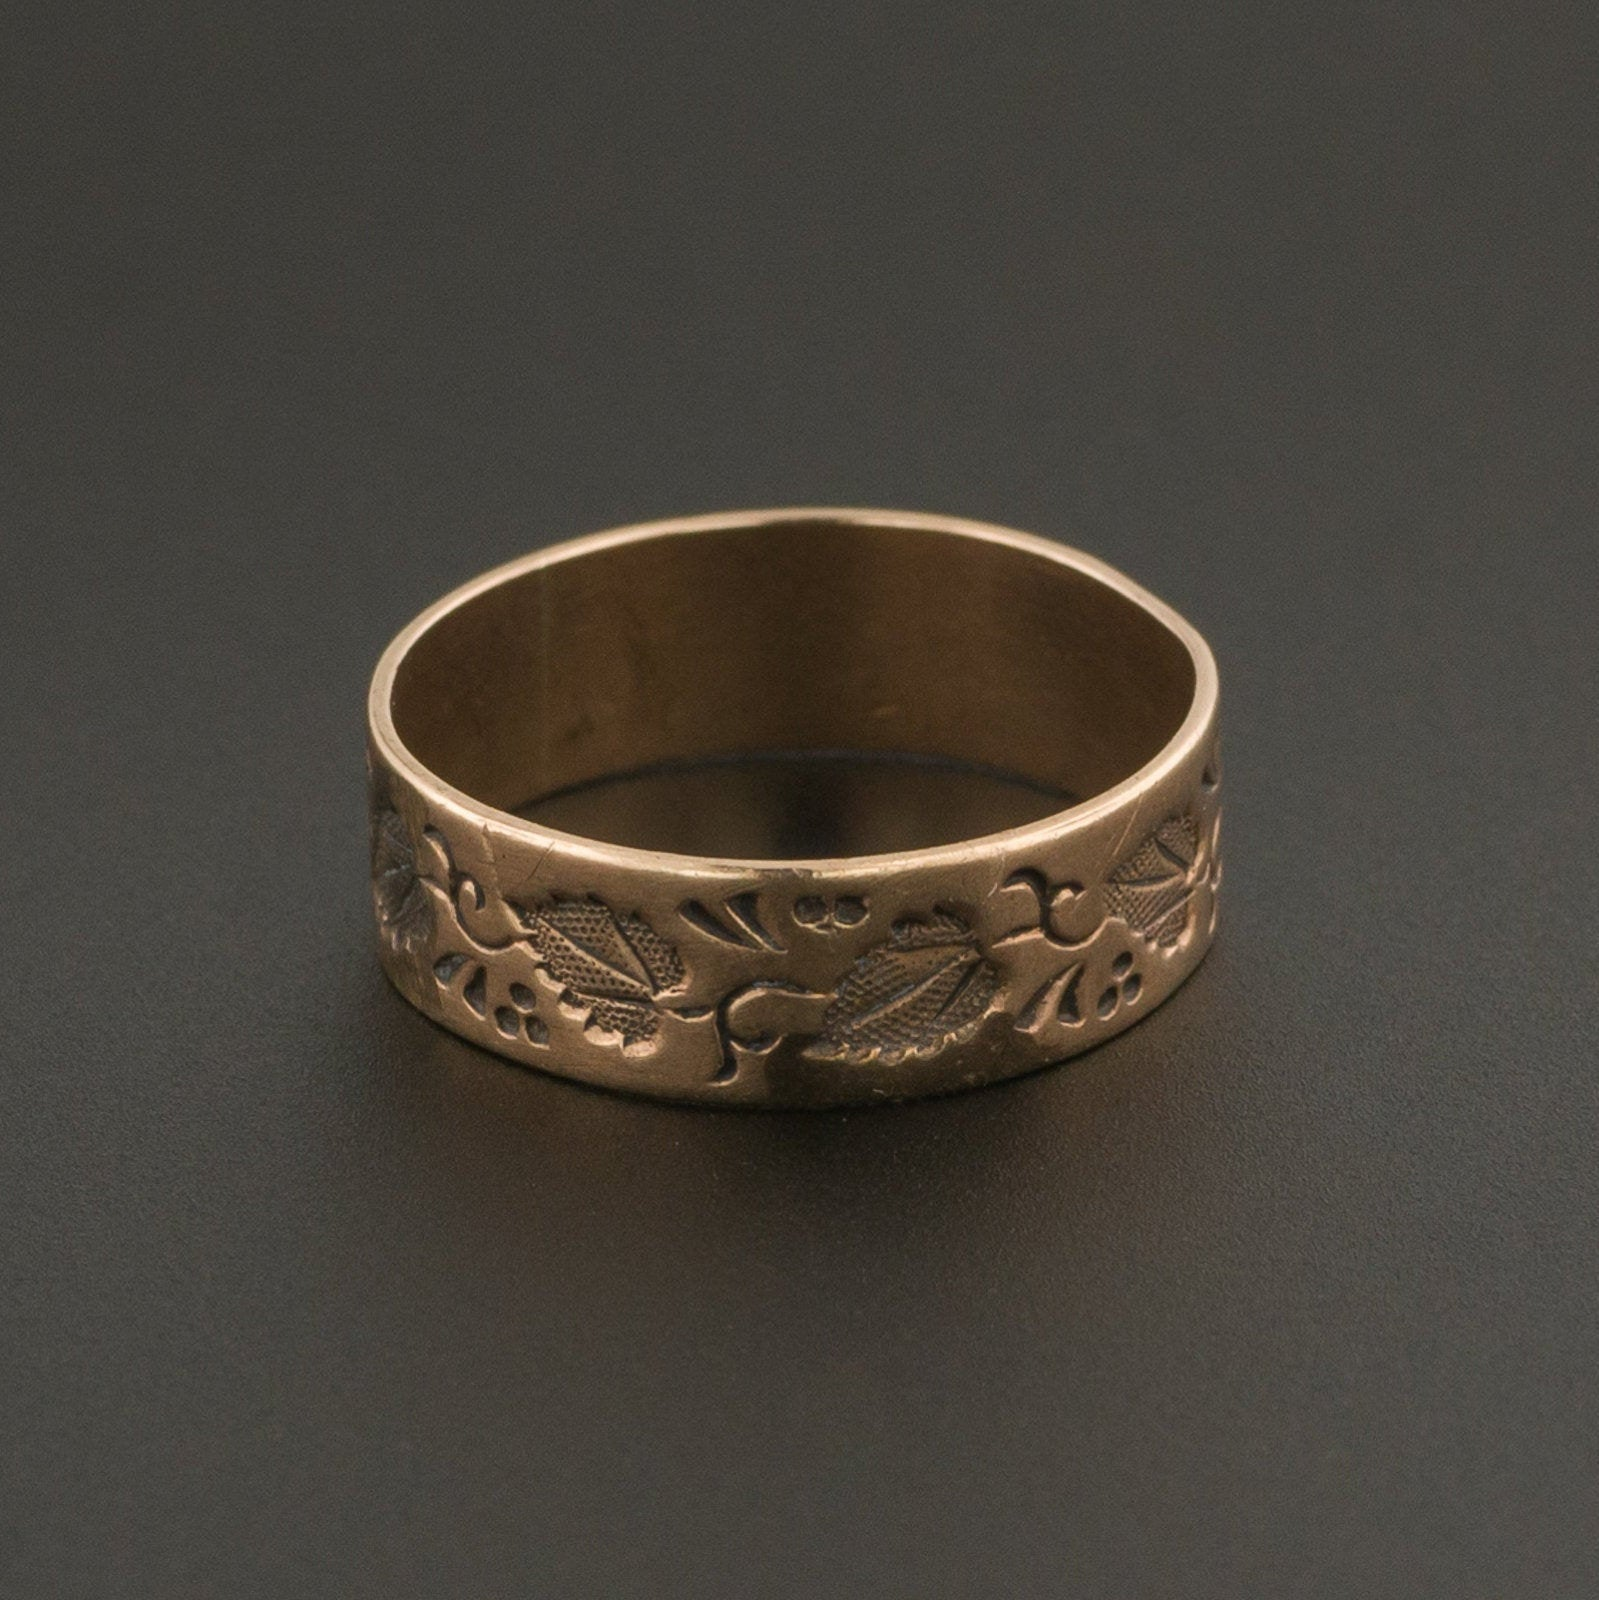 Antique Cigar Band Ring | 10k Rose Gold Band | 10k Gold Ring